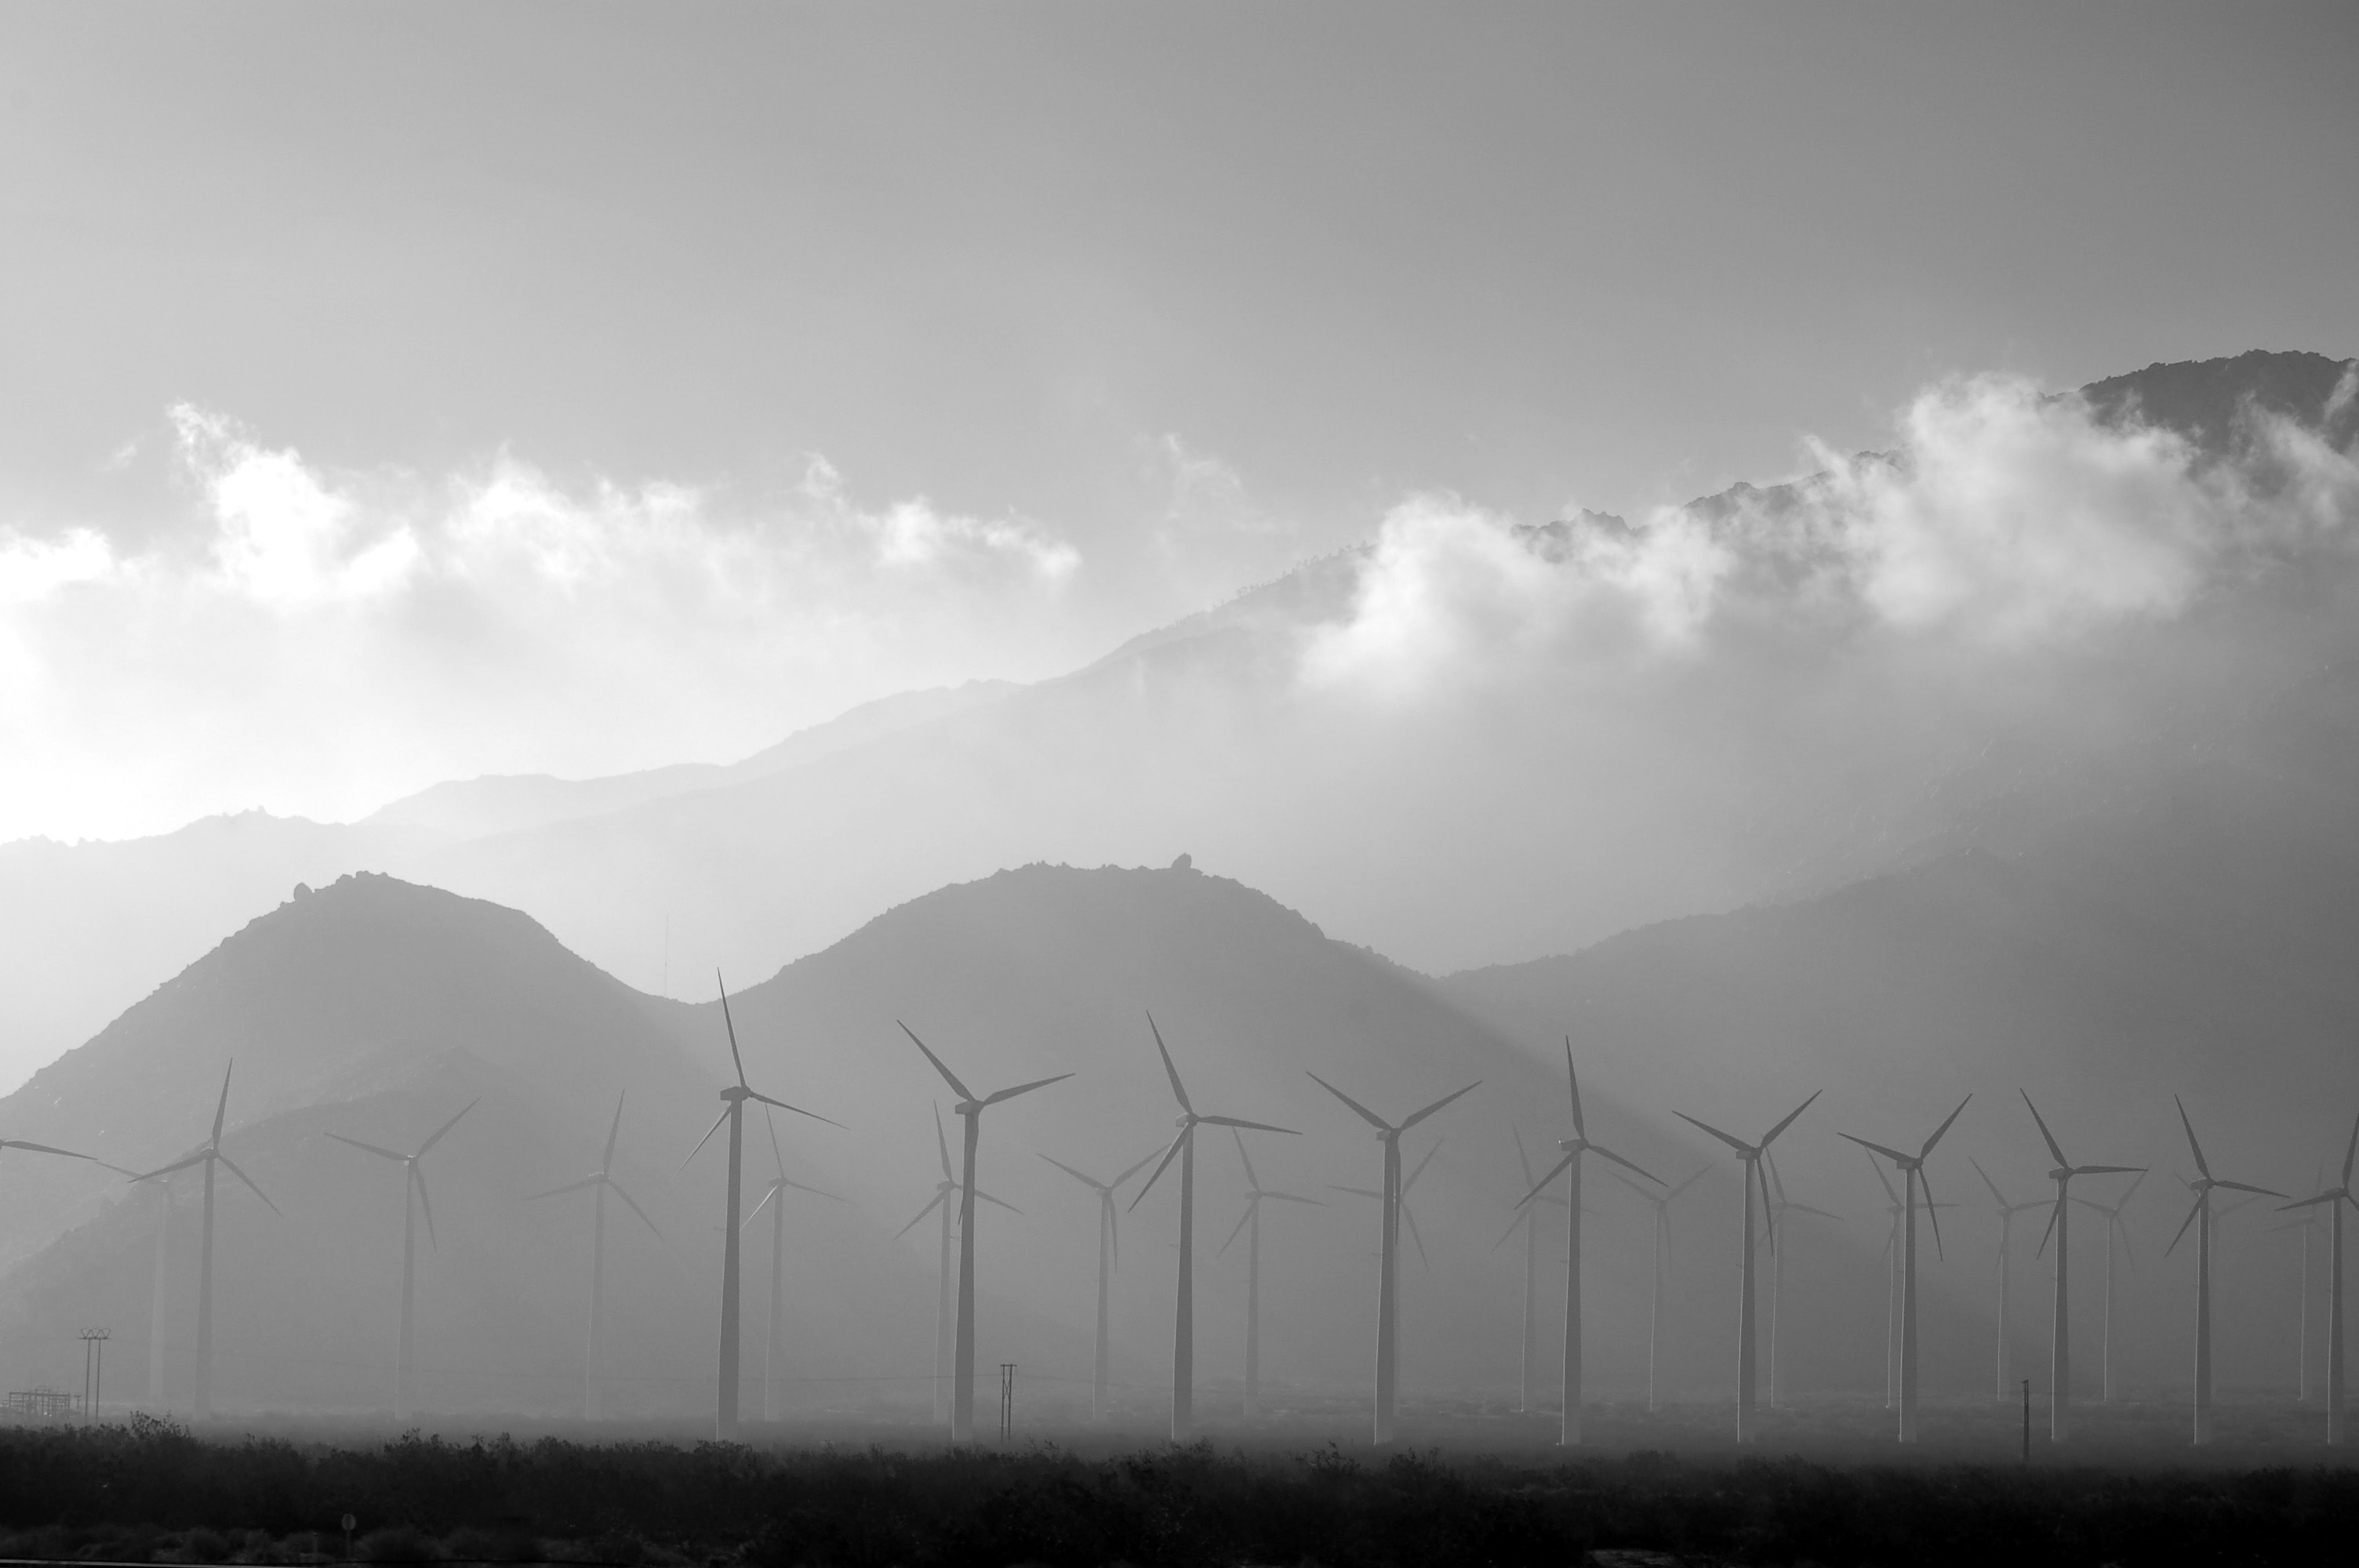 wind turbine near mountains